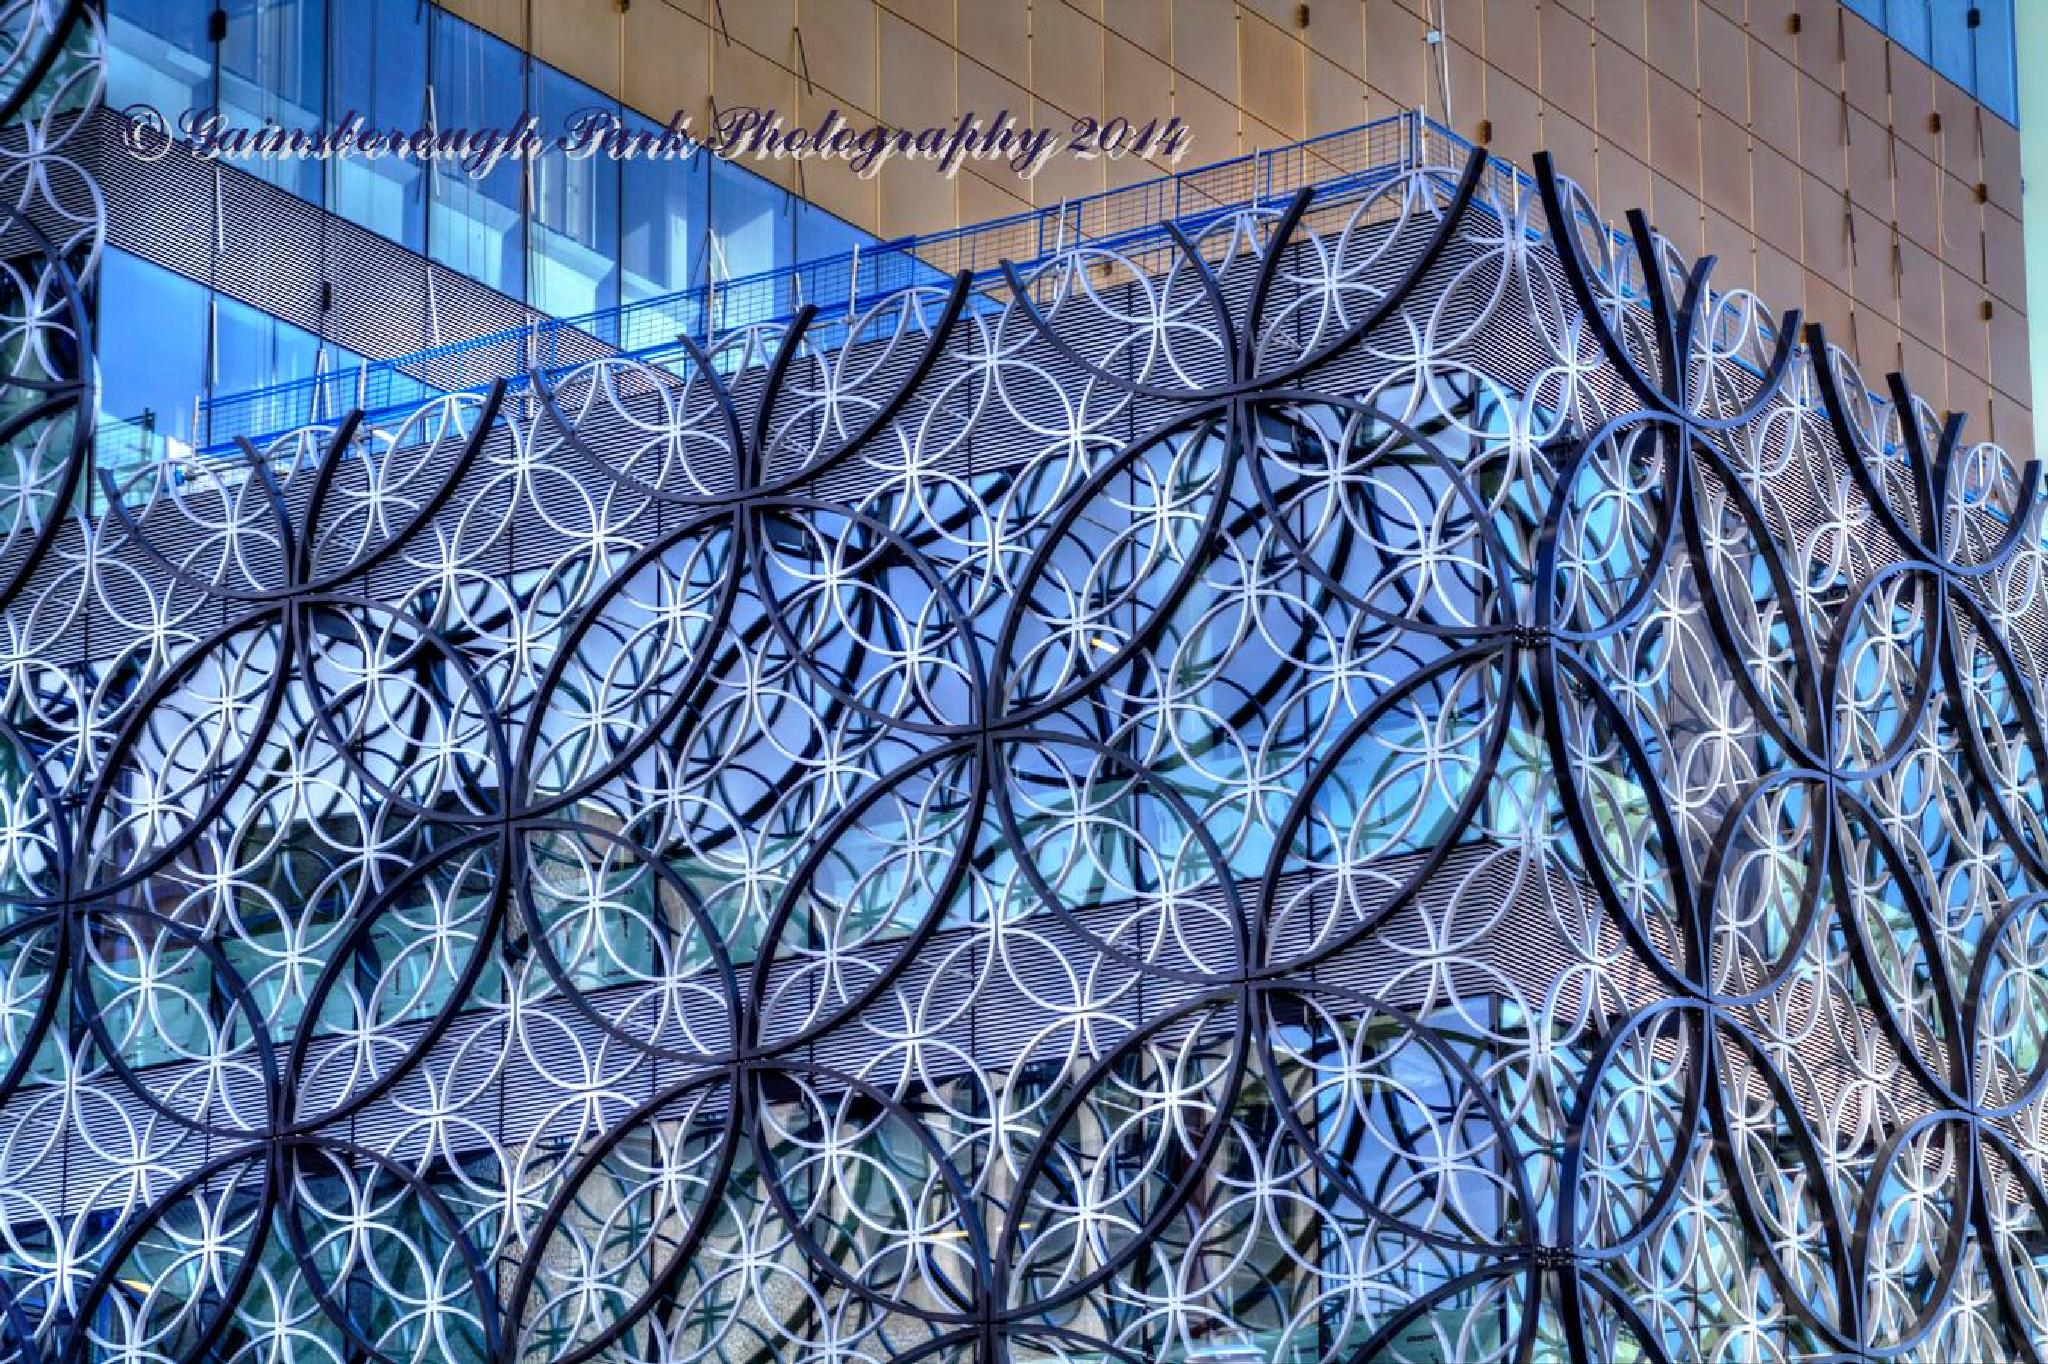 Library of Birmingham by Gainsborough Park Photography